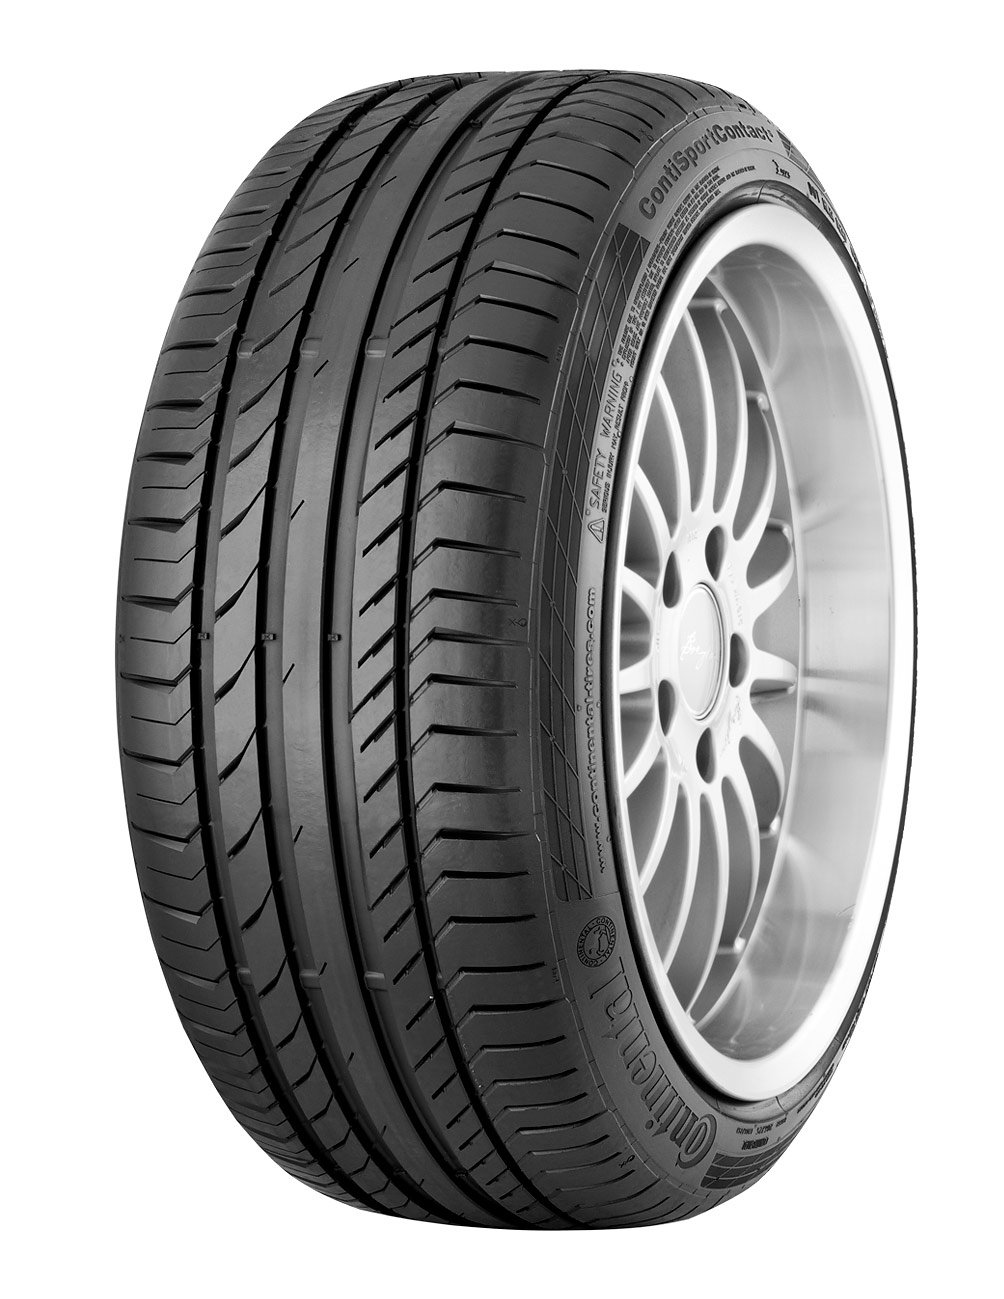 Gomme Nuove Continental 235/60 R18 103W SP. CONTACT 5 N0 pneumatici nuovi Estivo